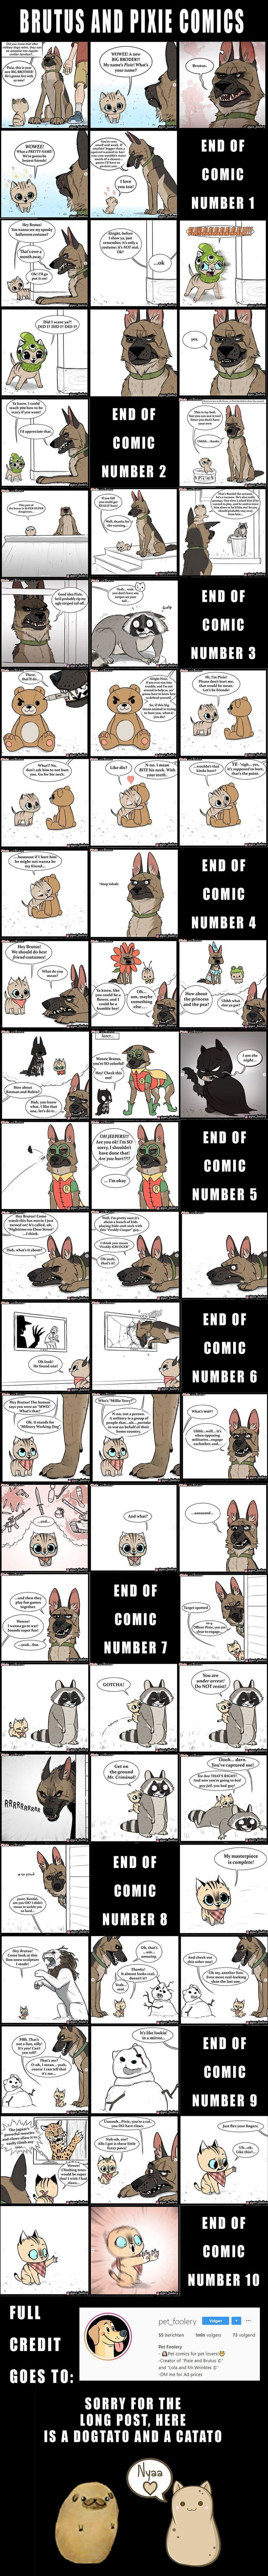 Brutus and Pixie all comics (all credit to Pet_Foolery in Instagram). Since many 9gaggers don't seem to have Instagram I thought it would be a good idea to turn all these comics into one picture. – Travis Brownlee – travisb12